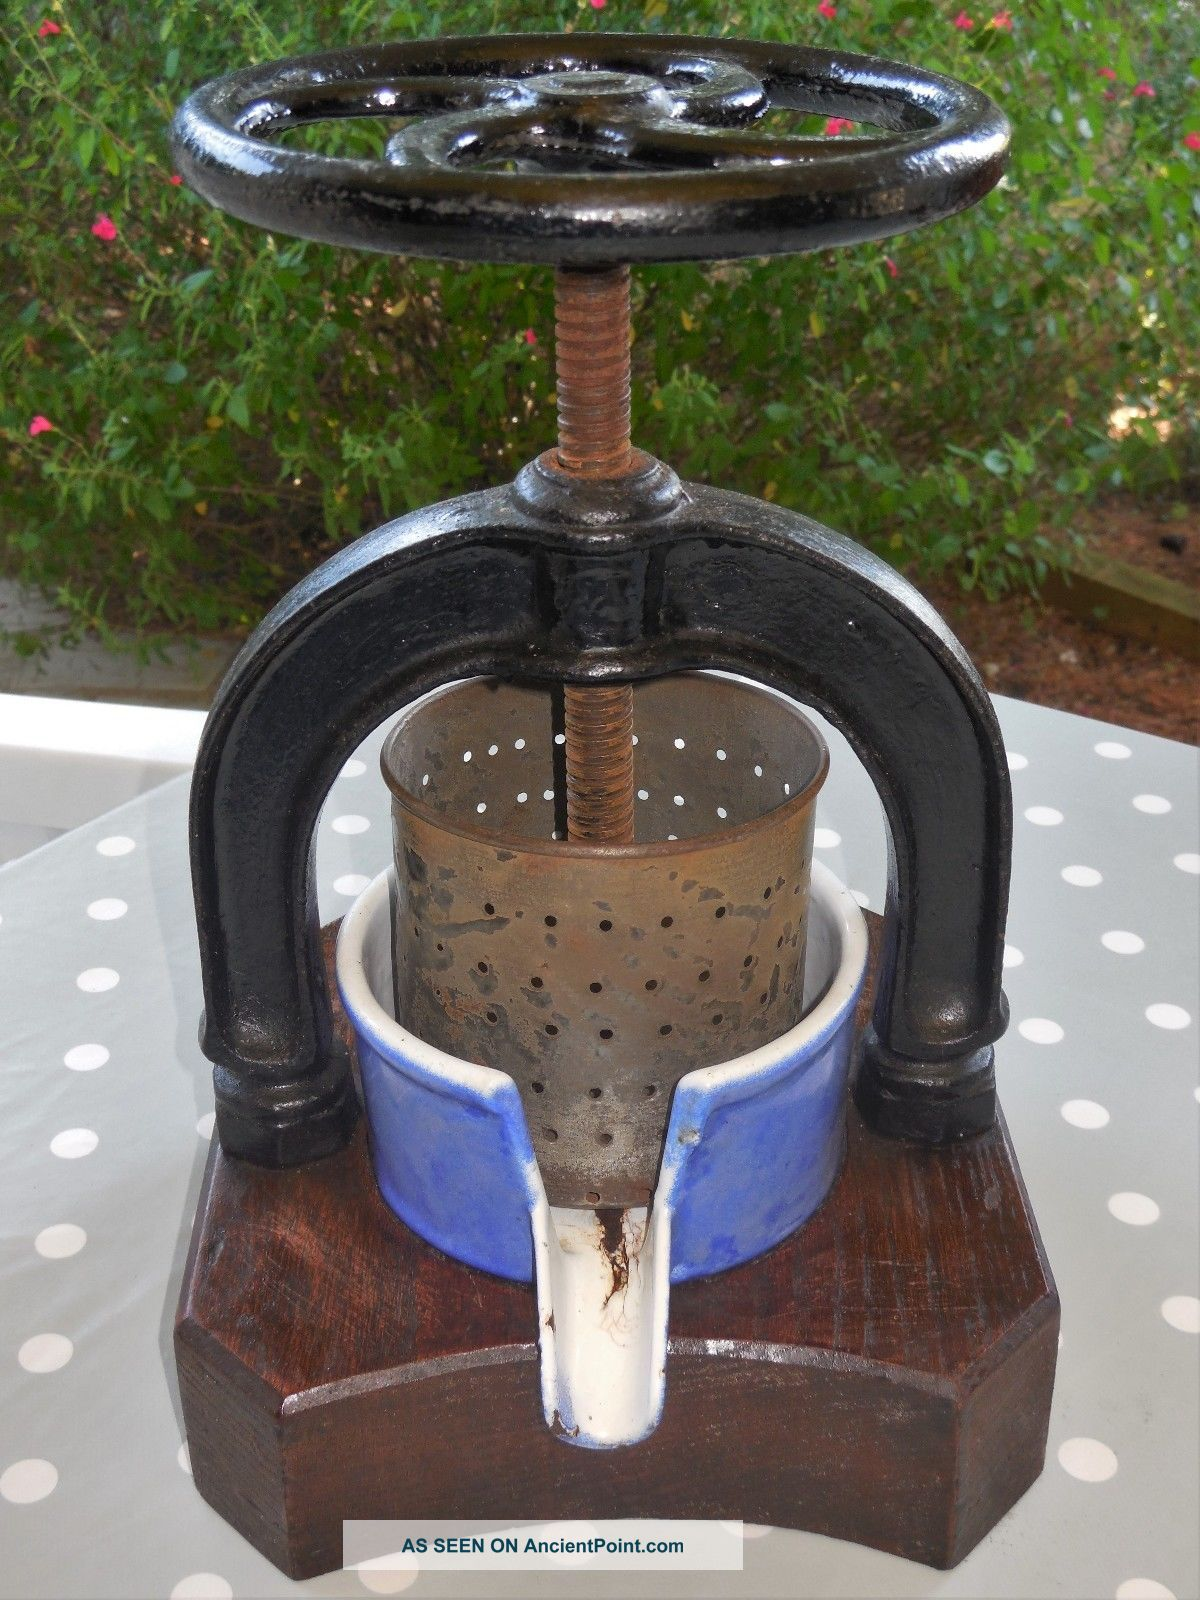 French Antique Fruit Press / Juicer With Rare Oak Base - Enamel Cast Iron Other Antique Home & Hearth photo